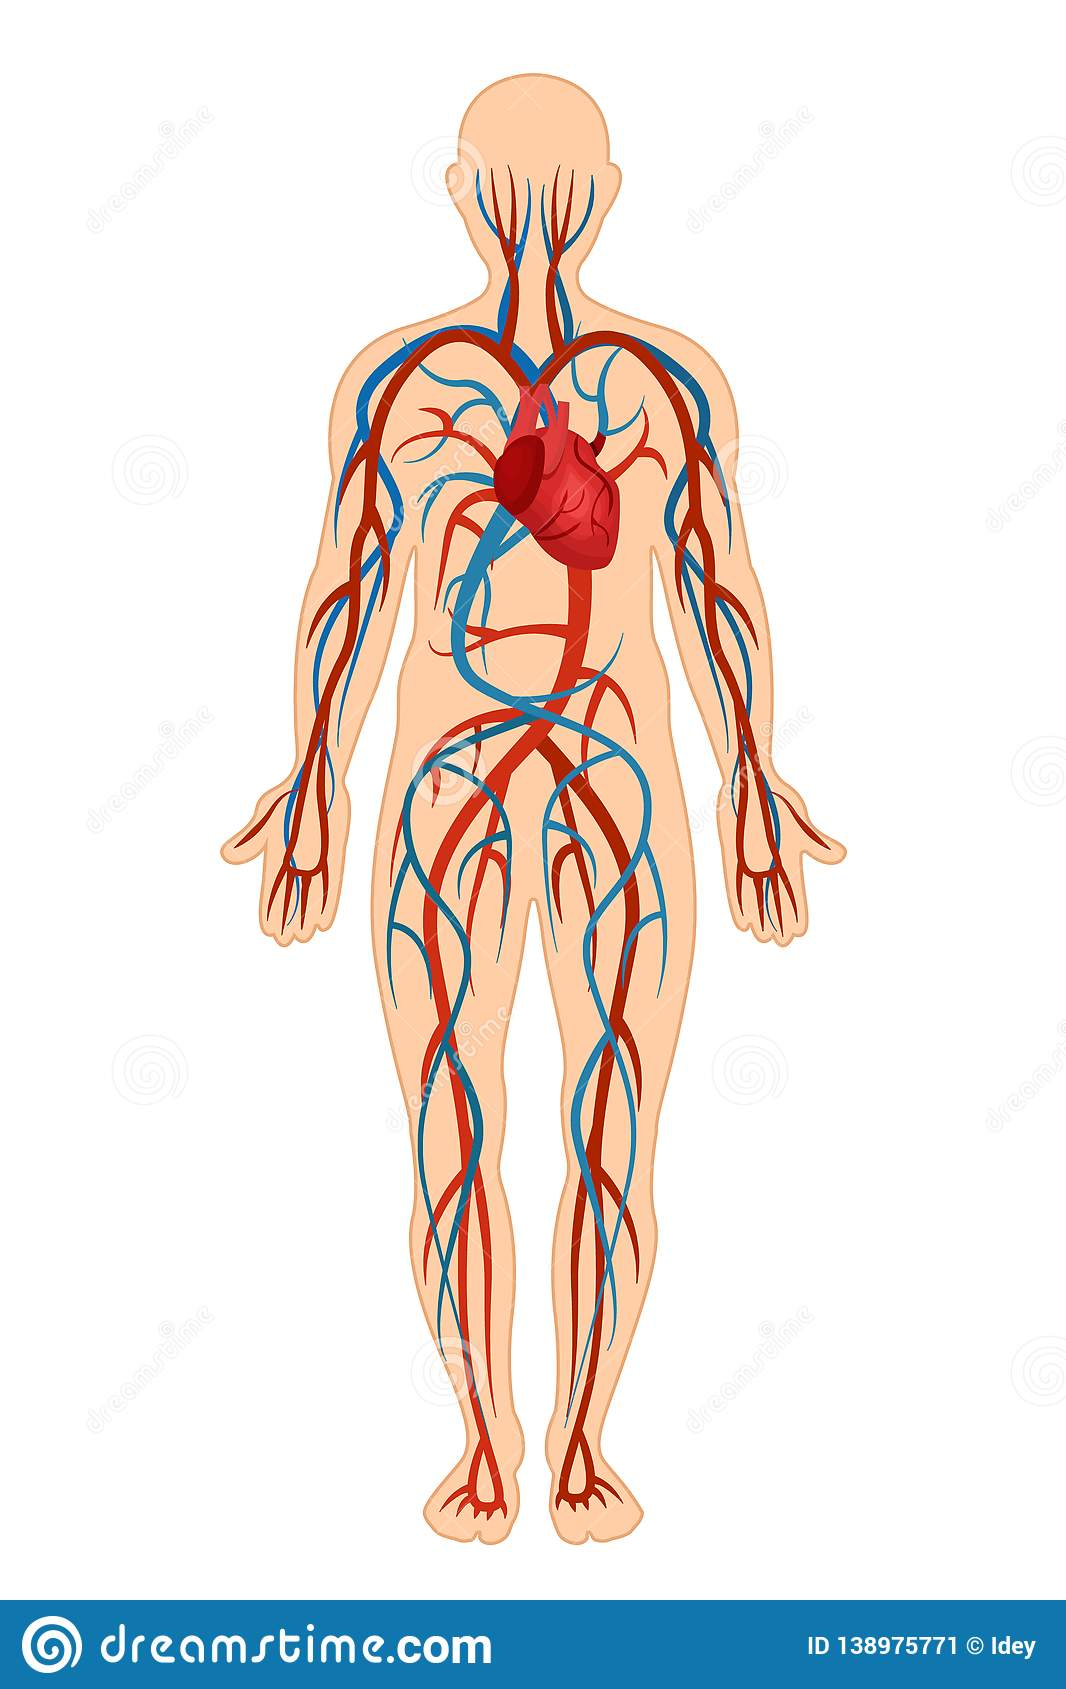 Anatomical Structure Of Human Body Circulatory System